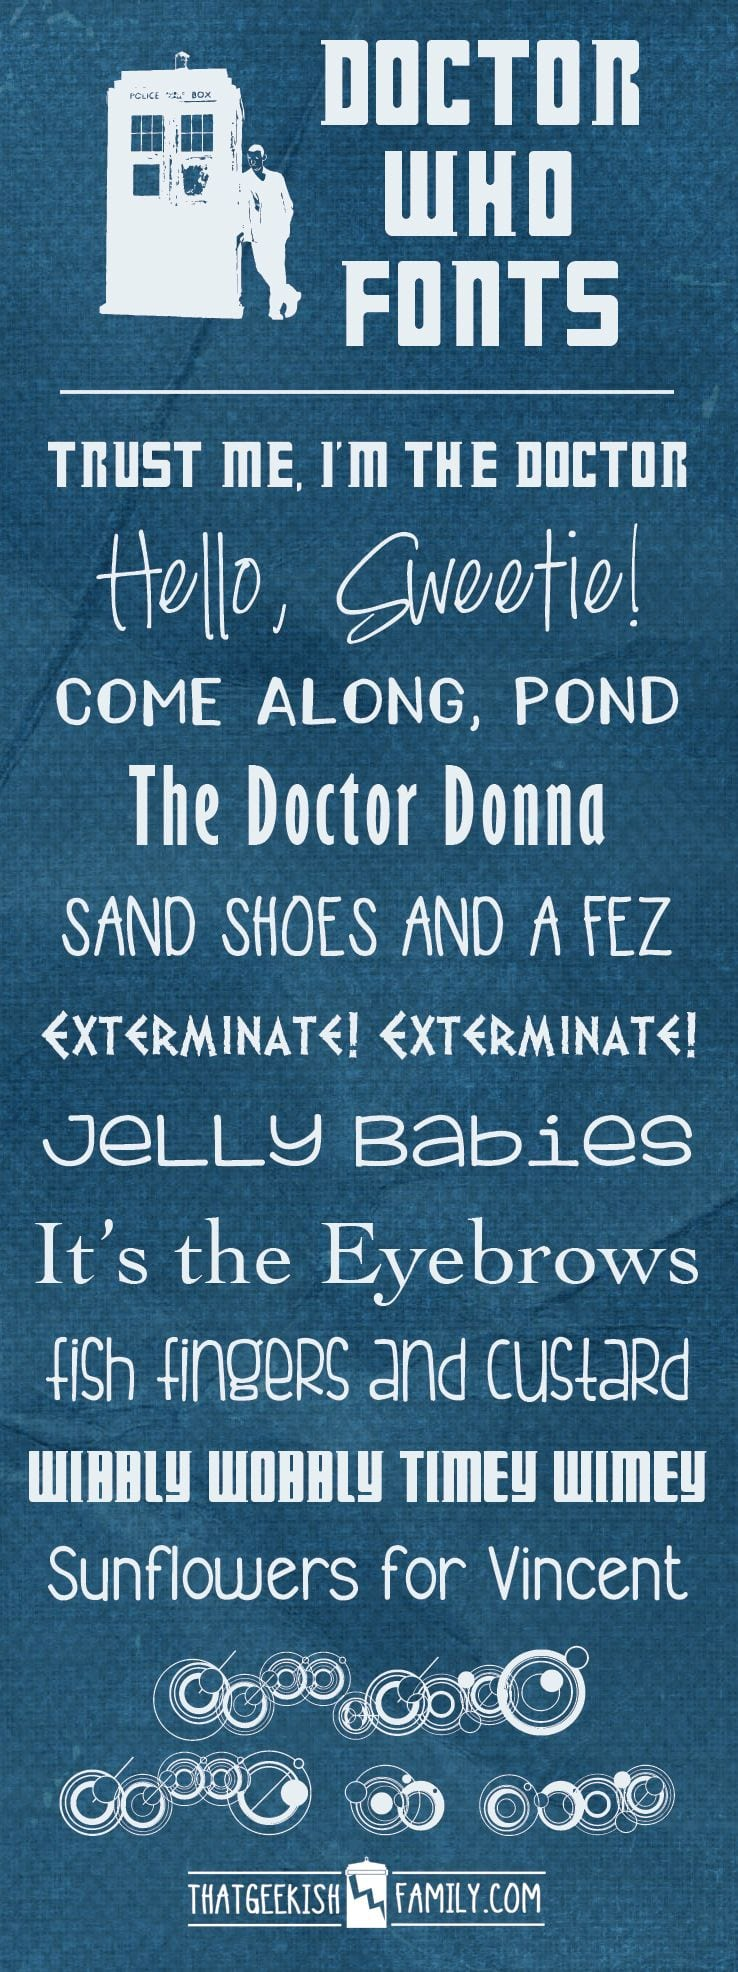 Free Doctor Who Fonts!